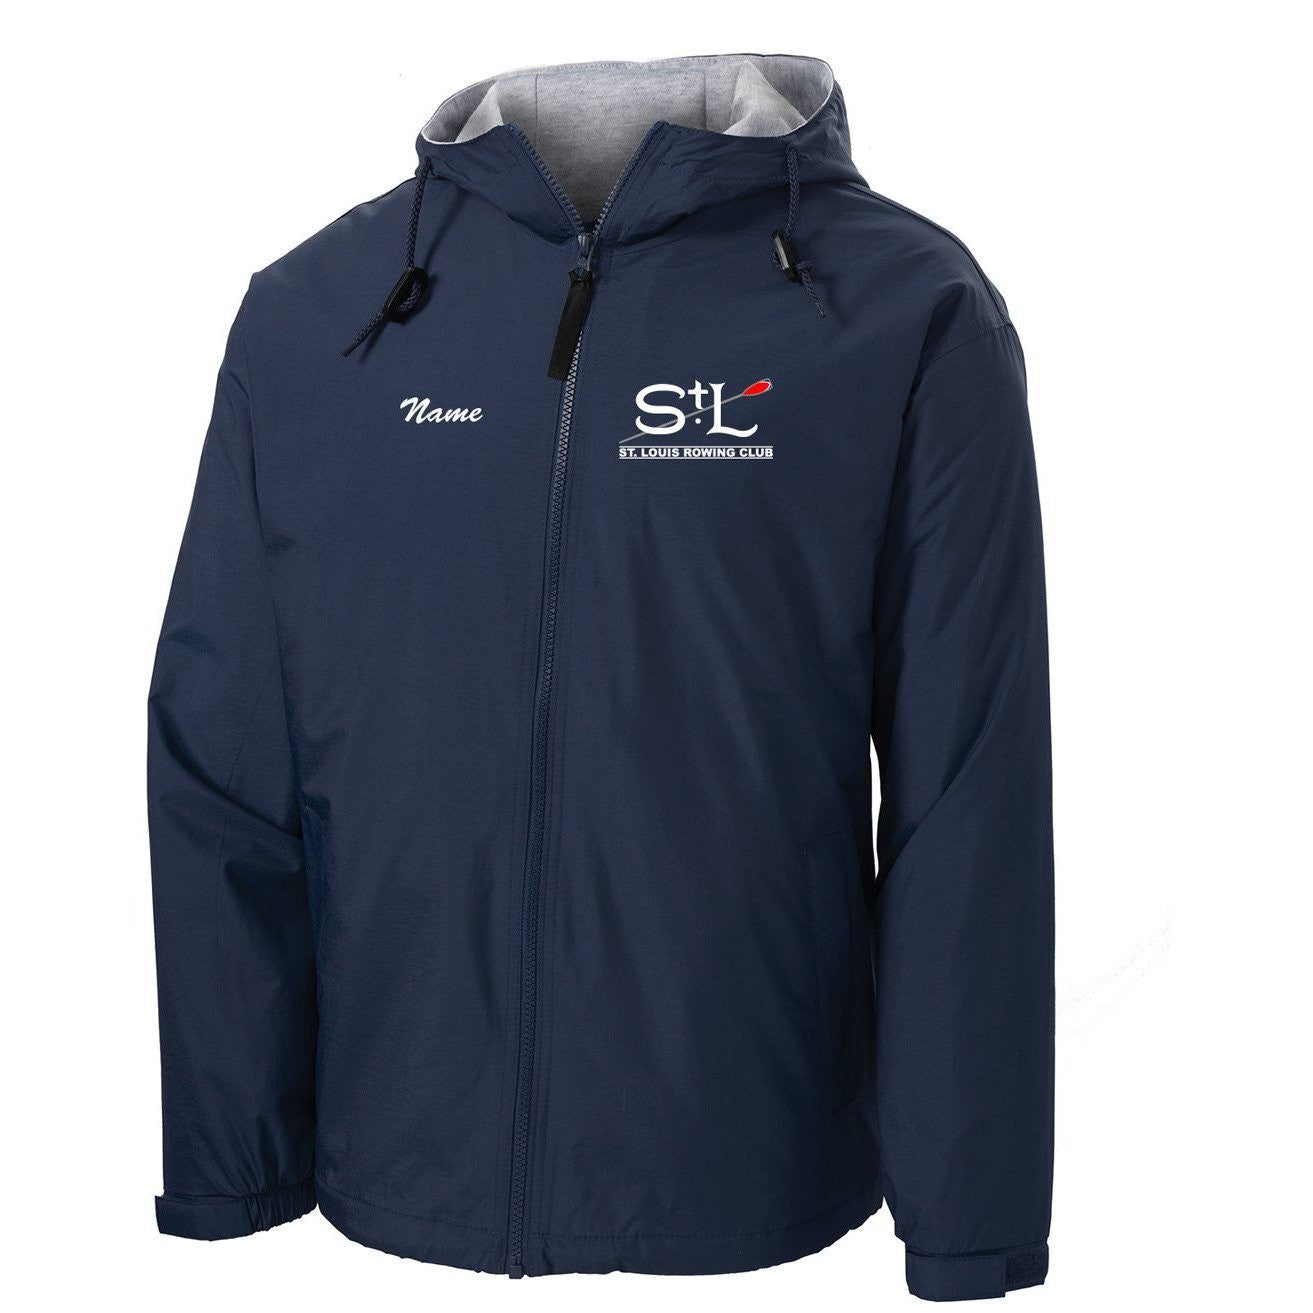 St. Louis Rowing Club Team Spectator Jacket